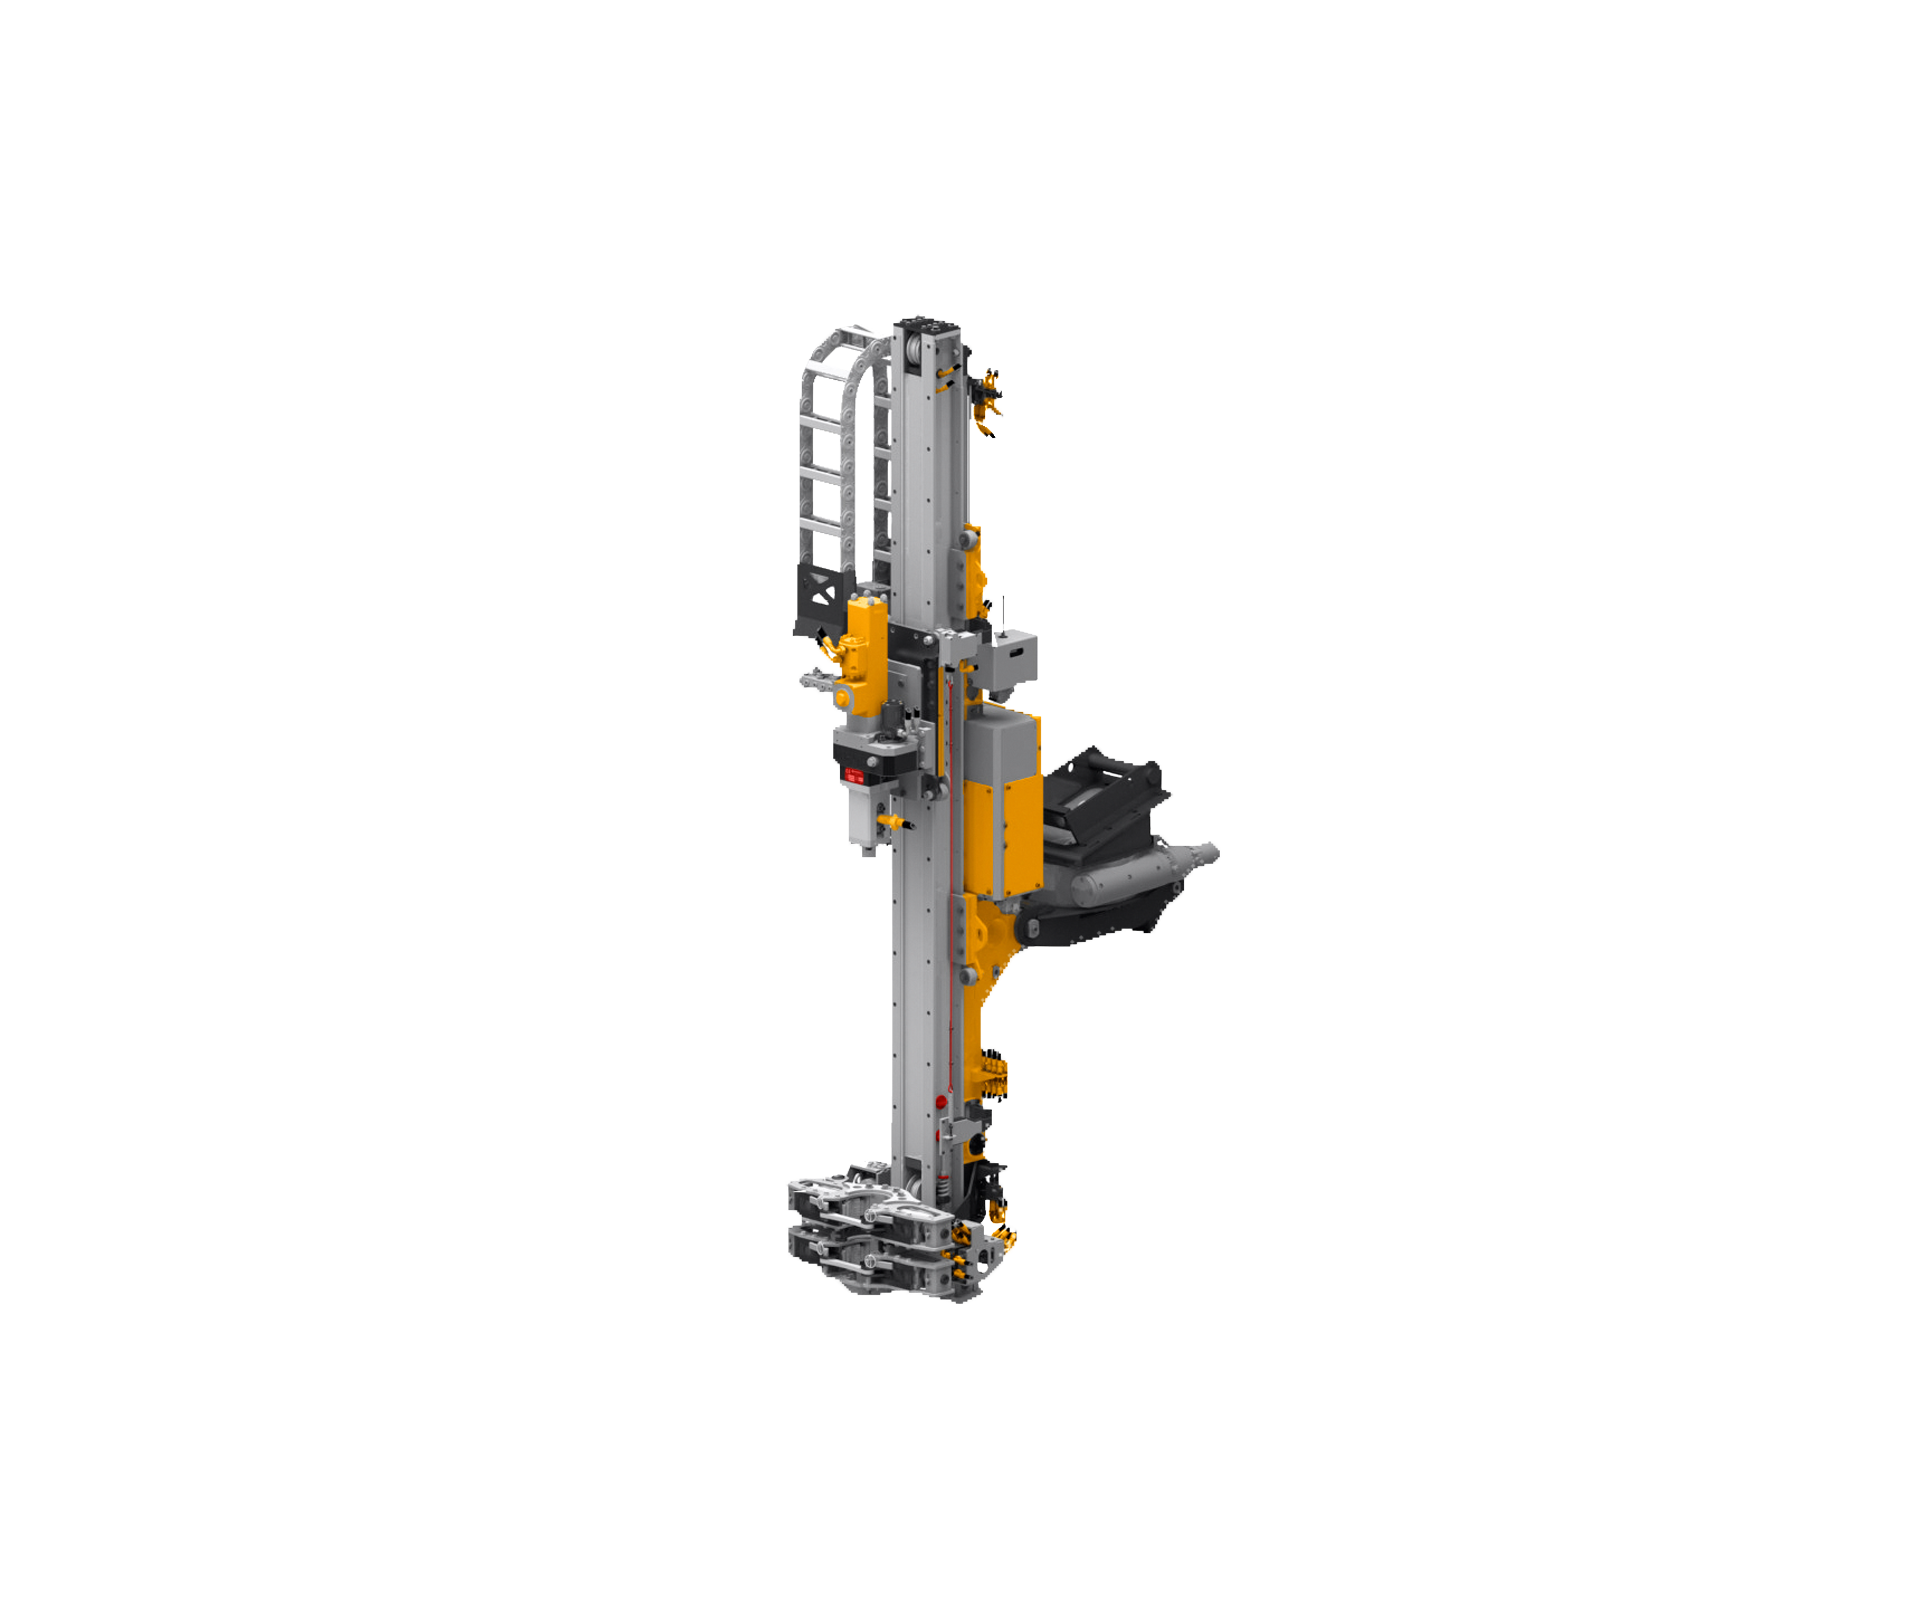 Drilling unit attachments